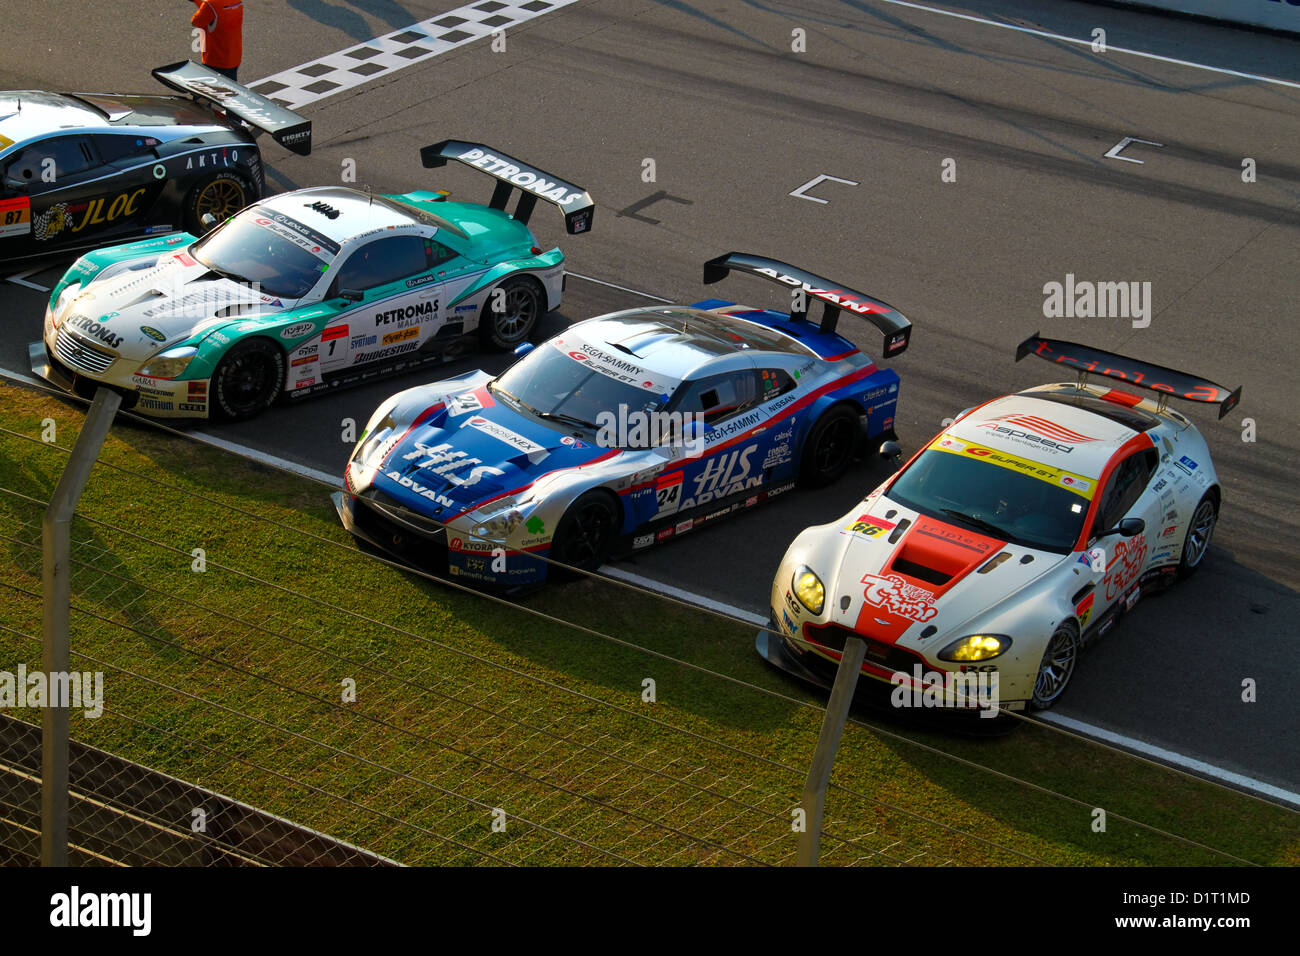 SuperGT cars stop at the finishing line at Super GT race on June 20, 2010 in Sepang Circuit, Malaysia. - Stock Image